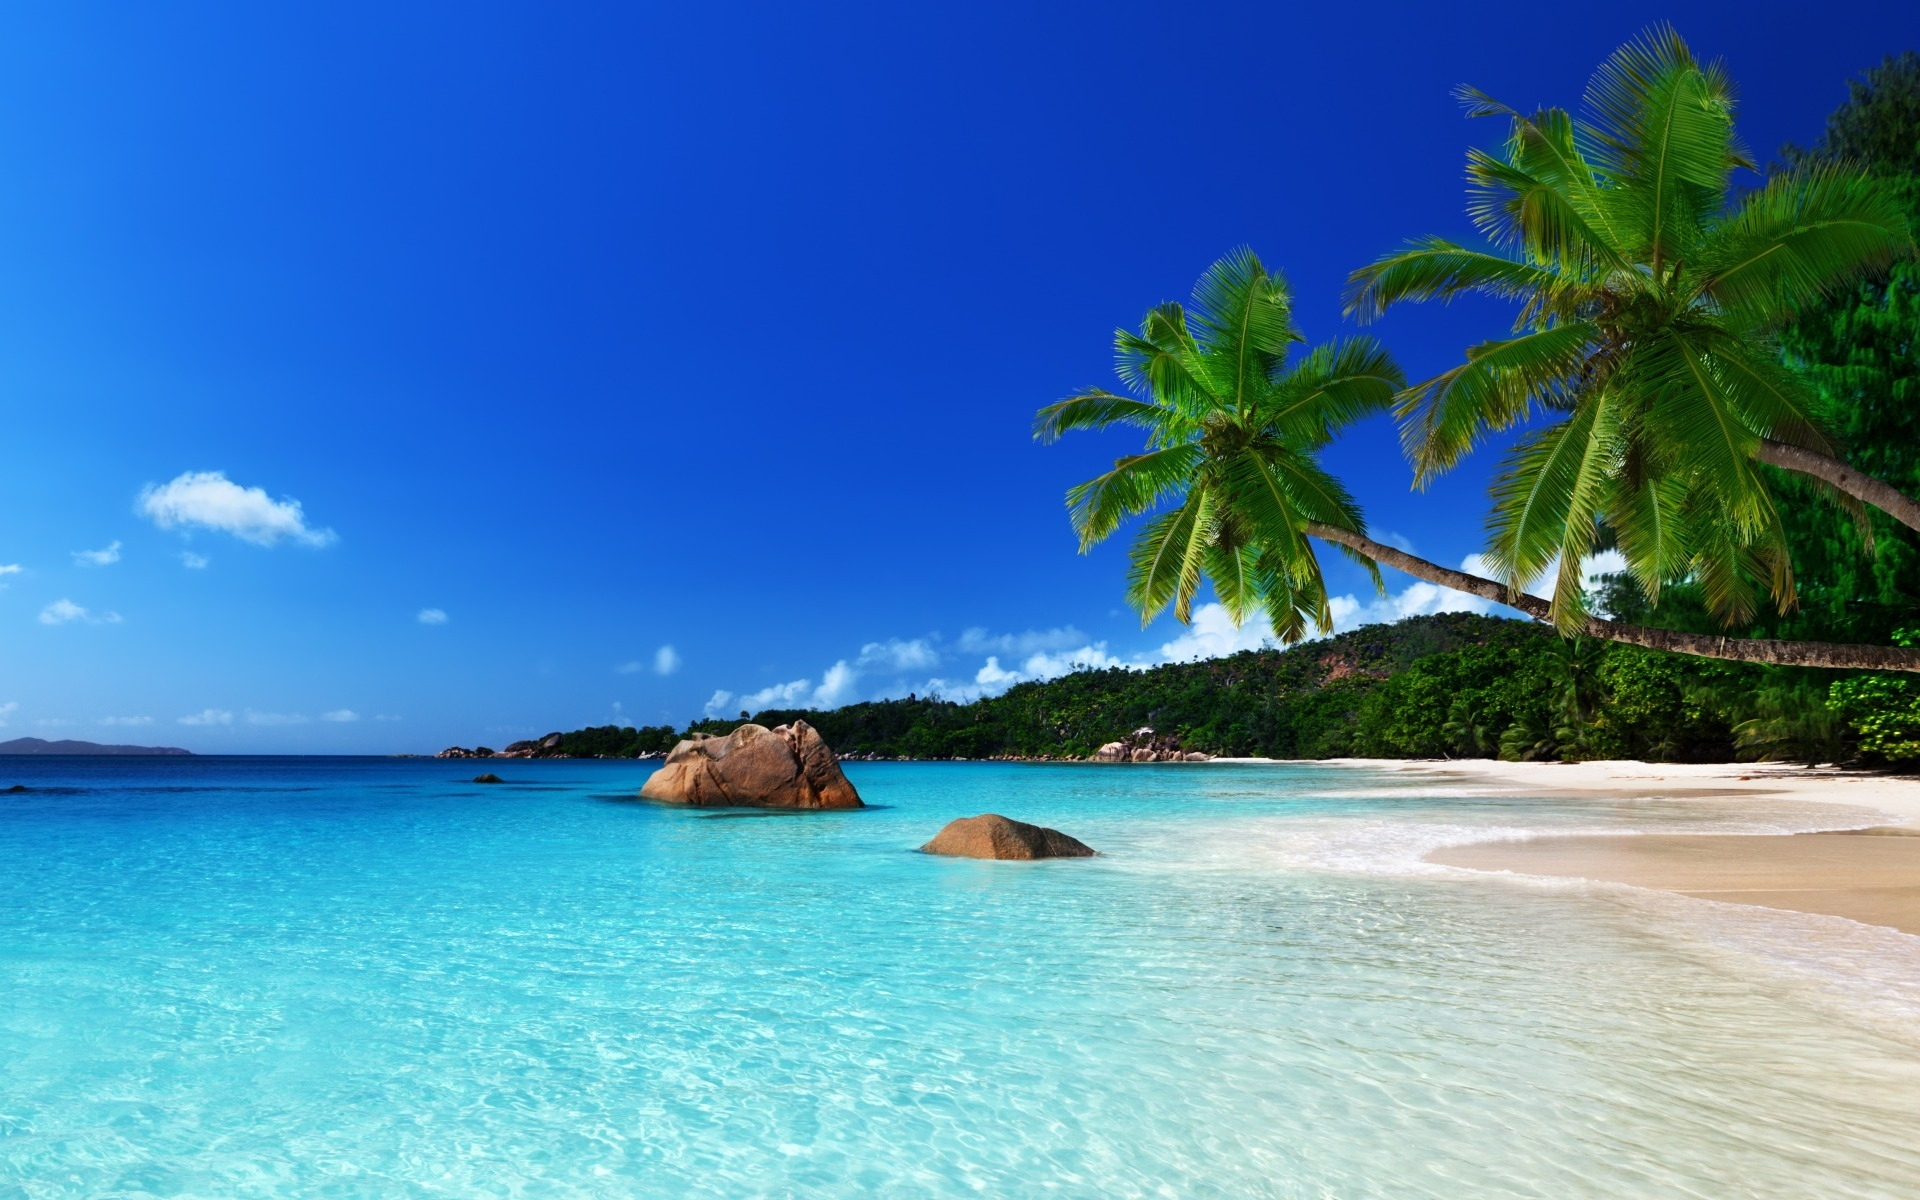 tropical island backgrounds - photo #3